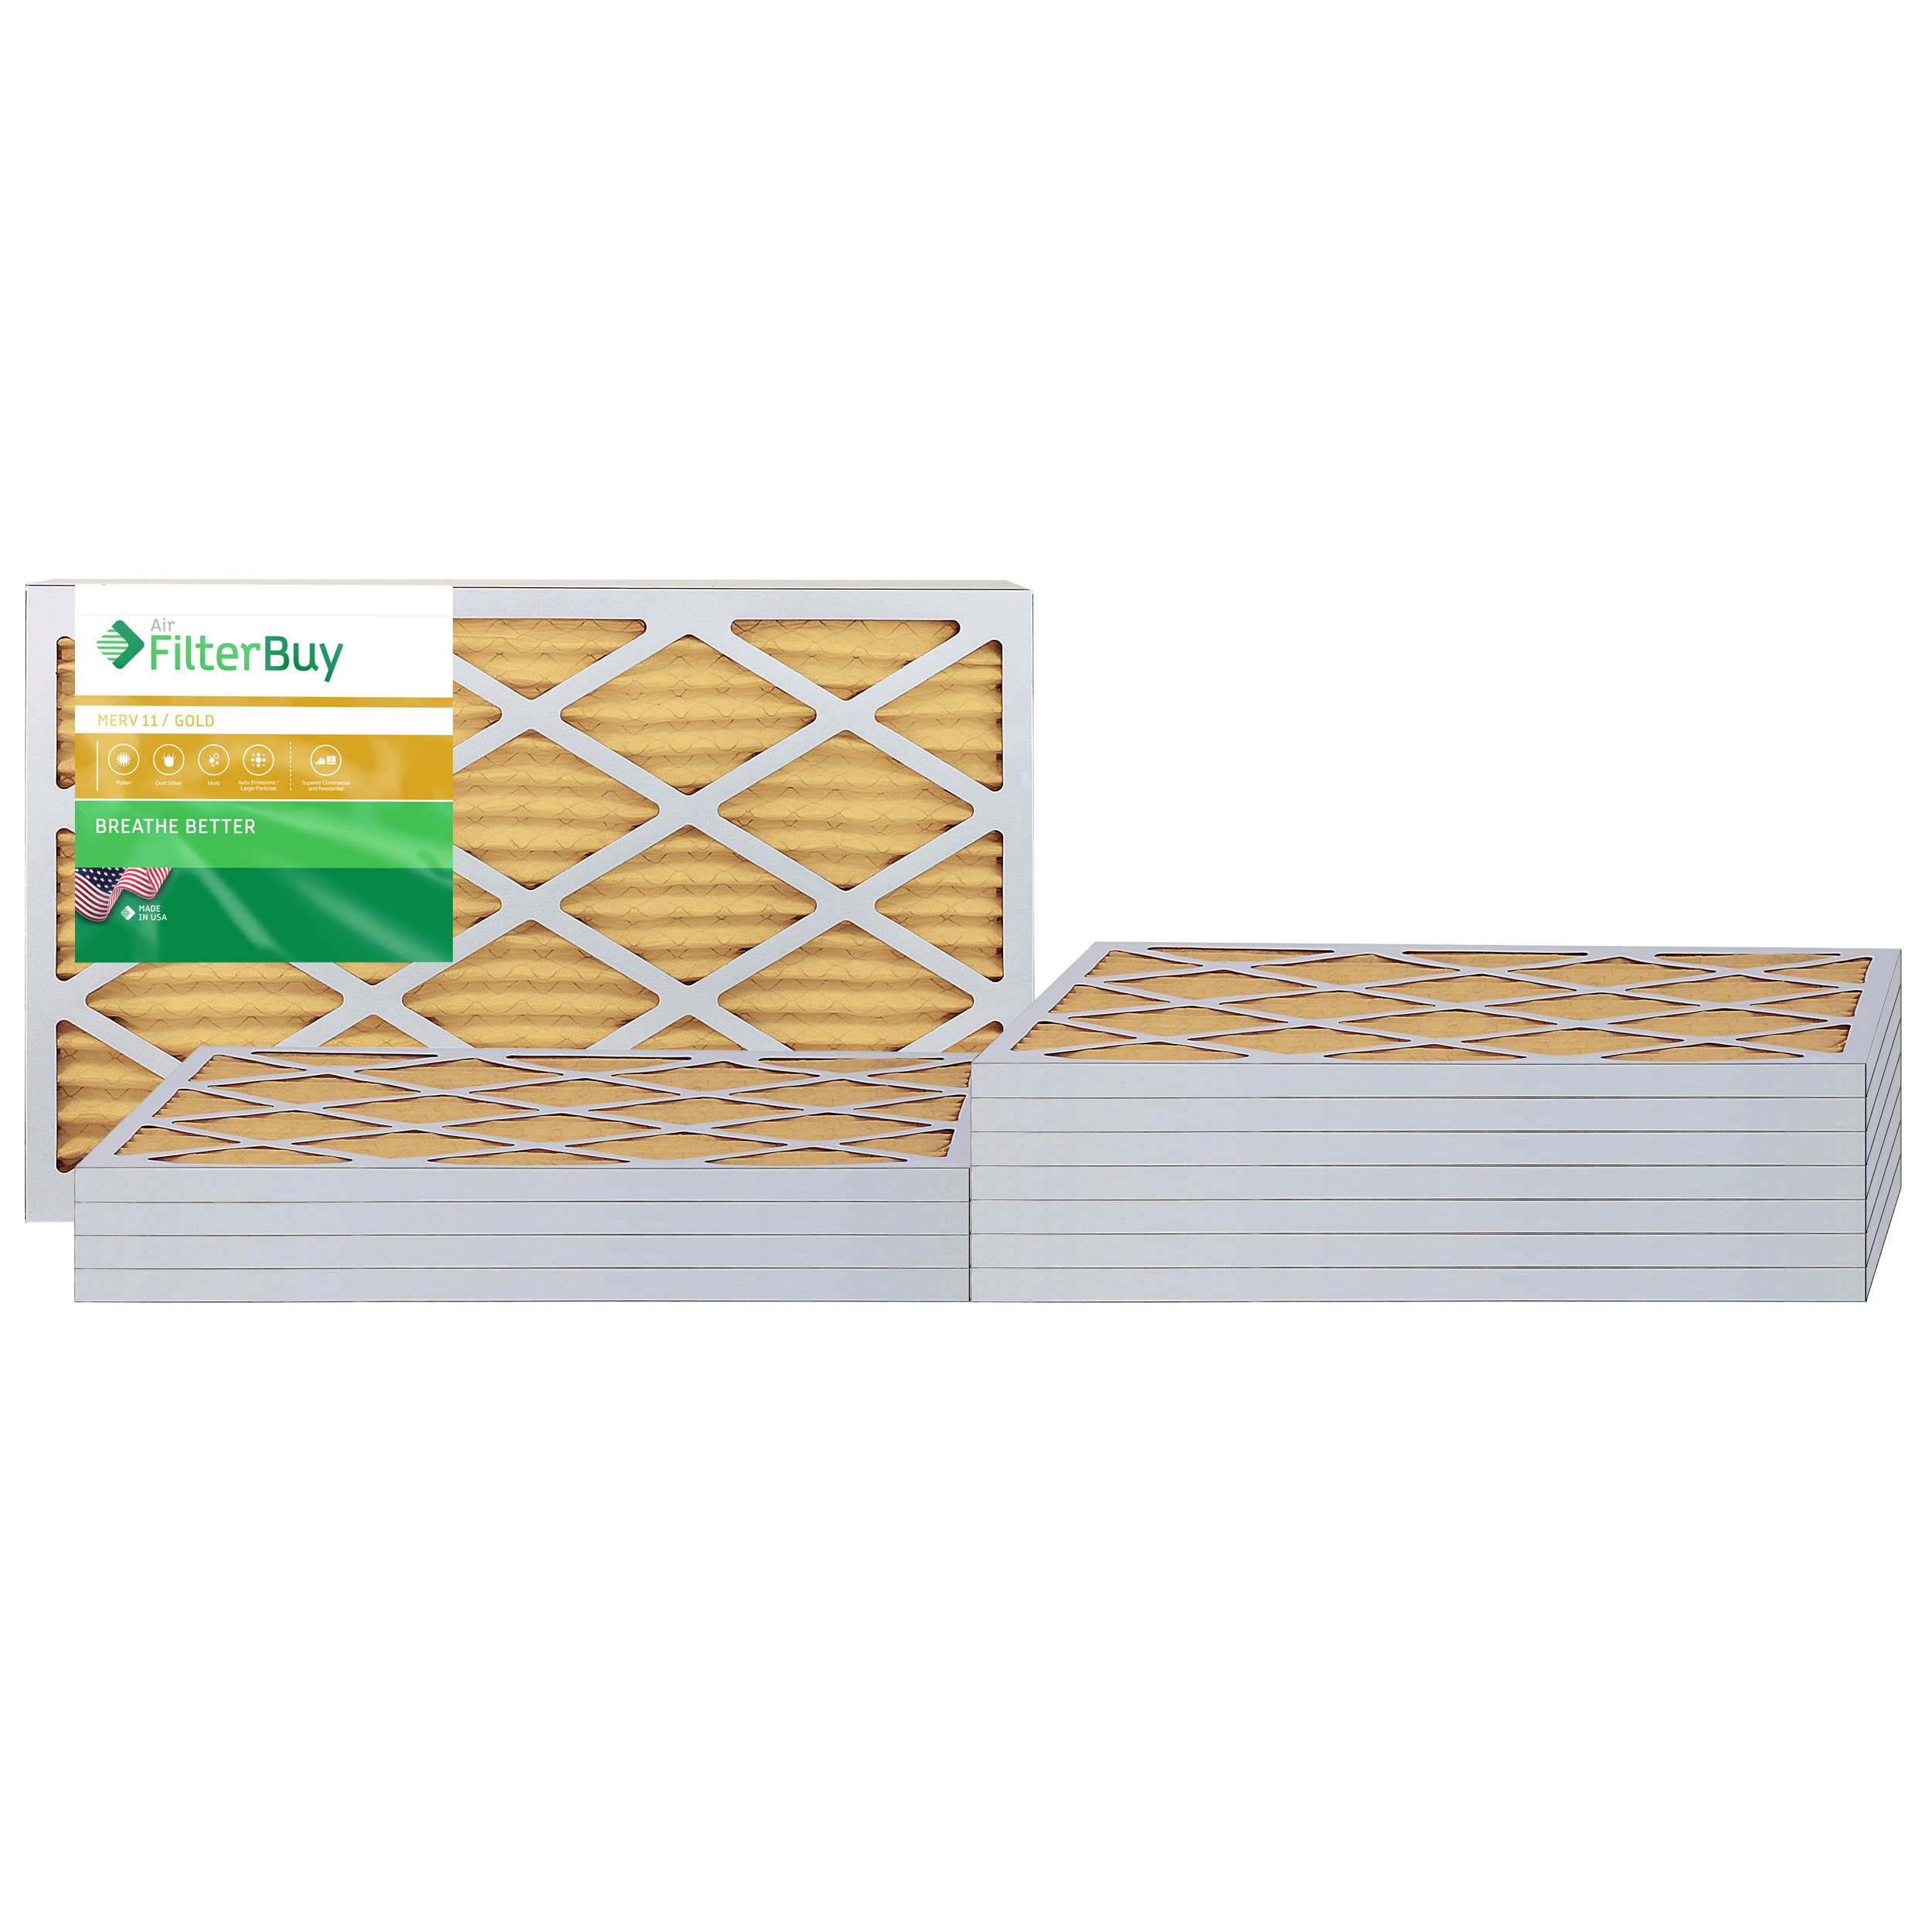 AFB Gold MERV 11 15x25x1 Pleated AC Furnace Air Filter. Pack of 12 Filters. 100% produced in the USA.